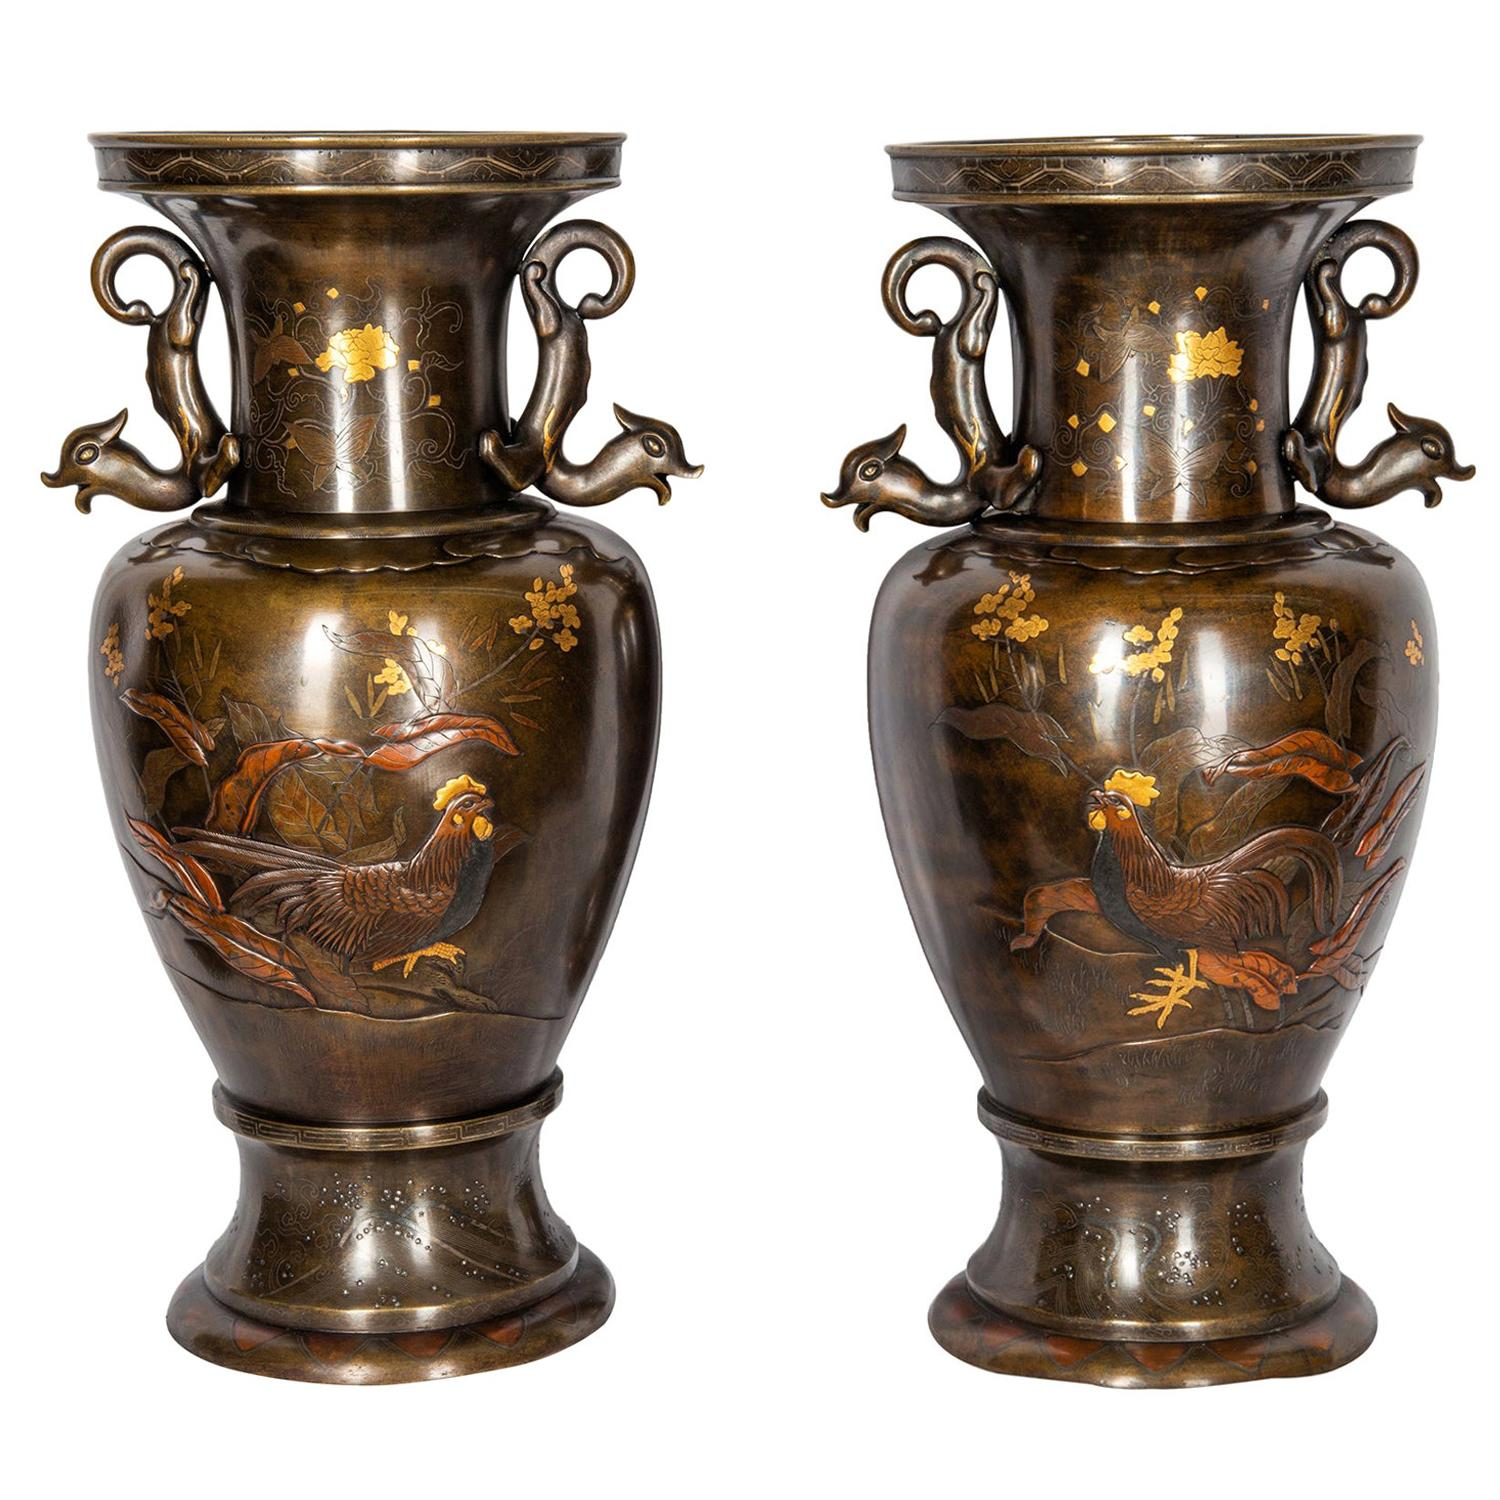 Pair of Japanese Miyao Style Bronze Engraved Vases, Late 19th Century